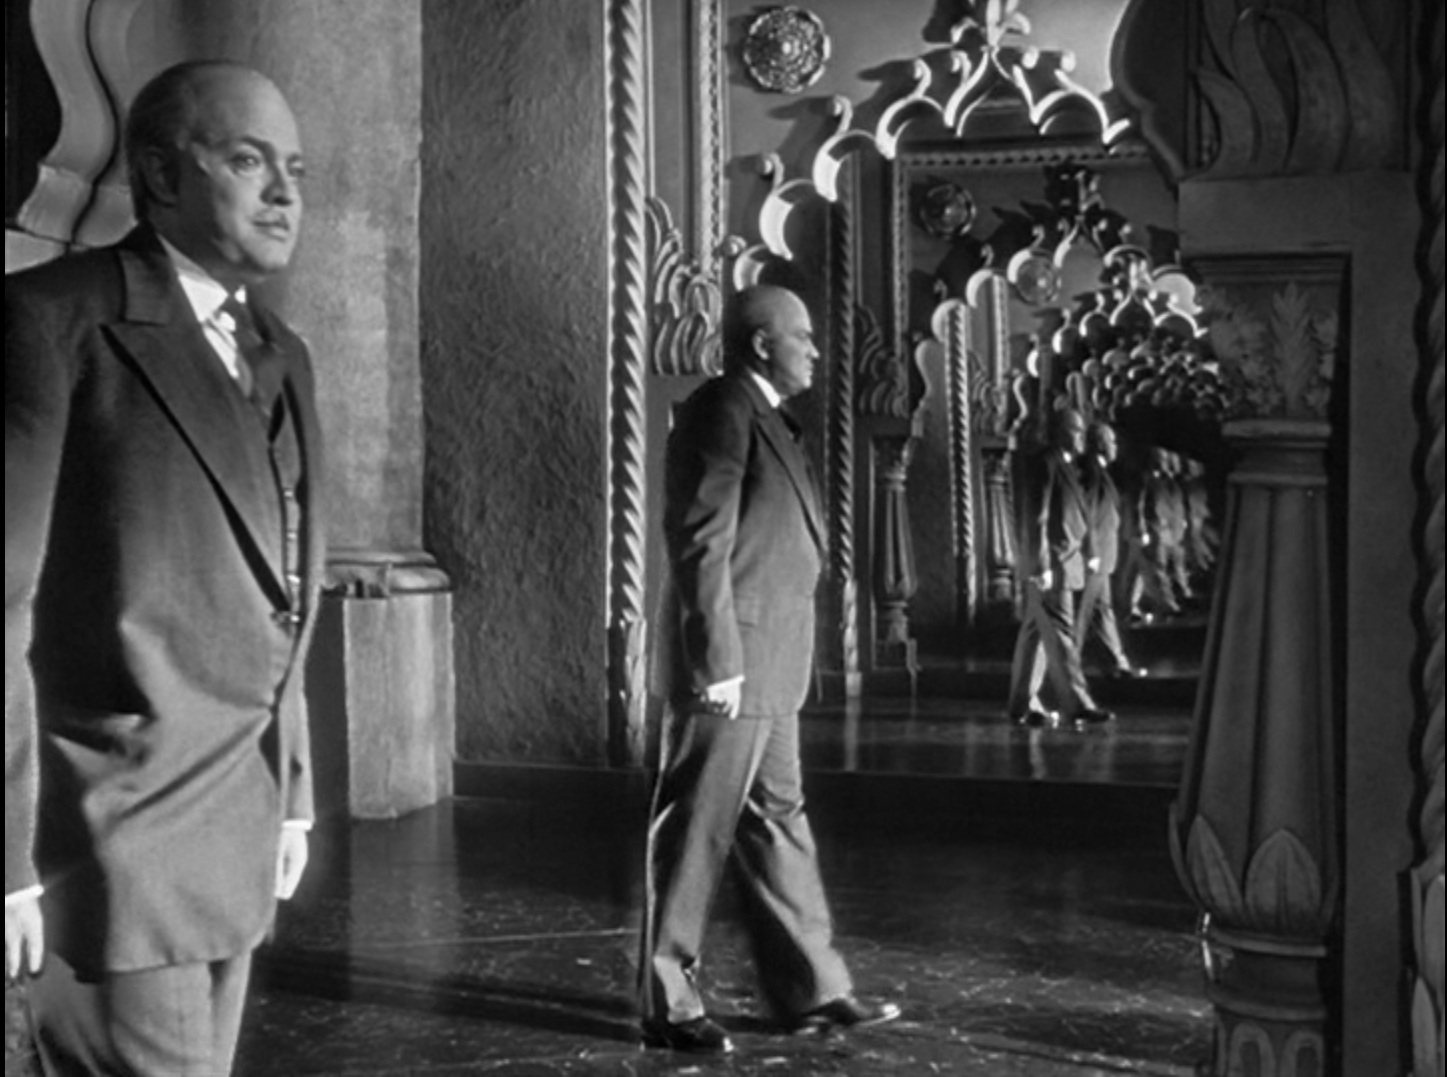 a cinematographic analysis of citizen kane a movie by orson welles Drama 3030n – introduction to film studies fall 2013  cinematographic properties i screening: citizen kane orson welles, dir usa: rko, 1941 119 min.